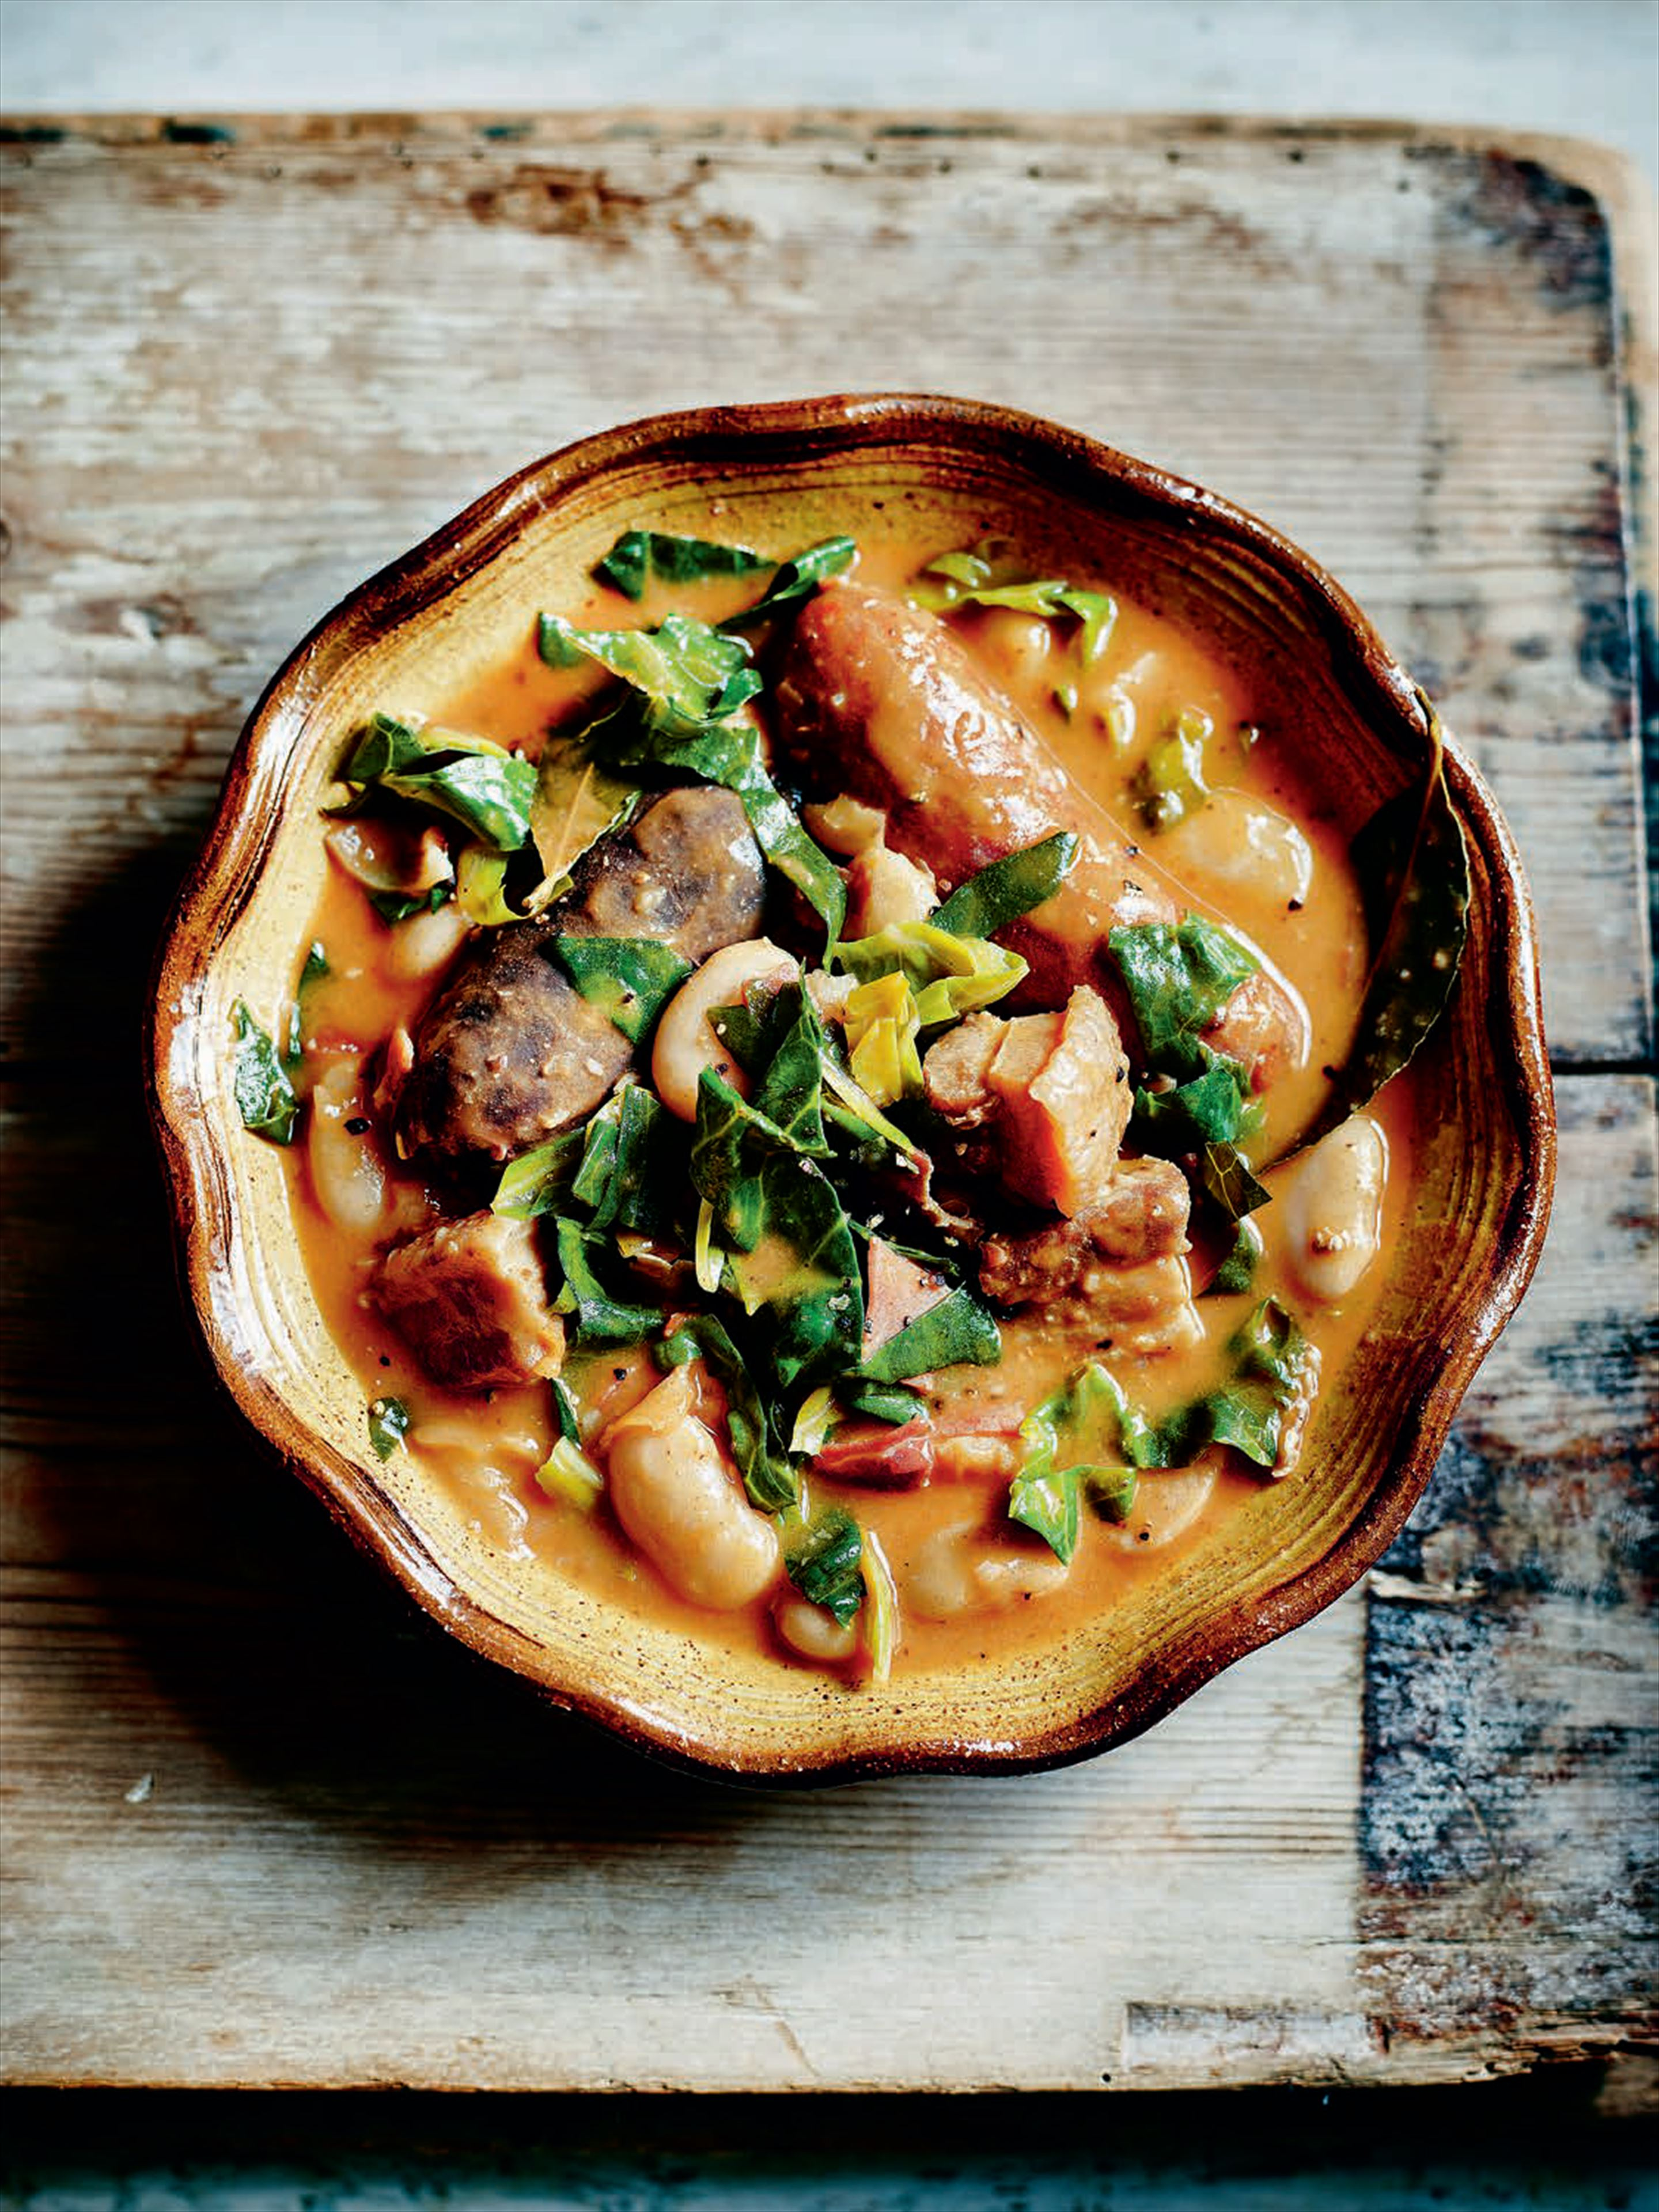 Chorizo, greens and bean stew